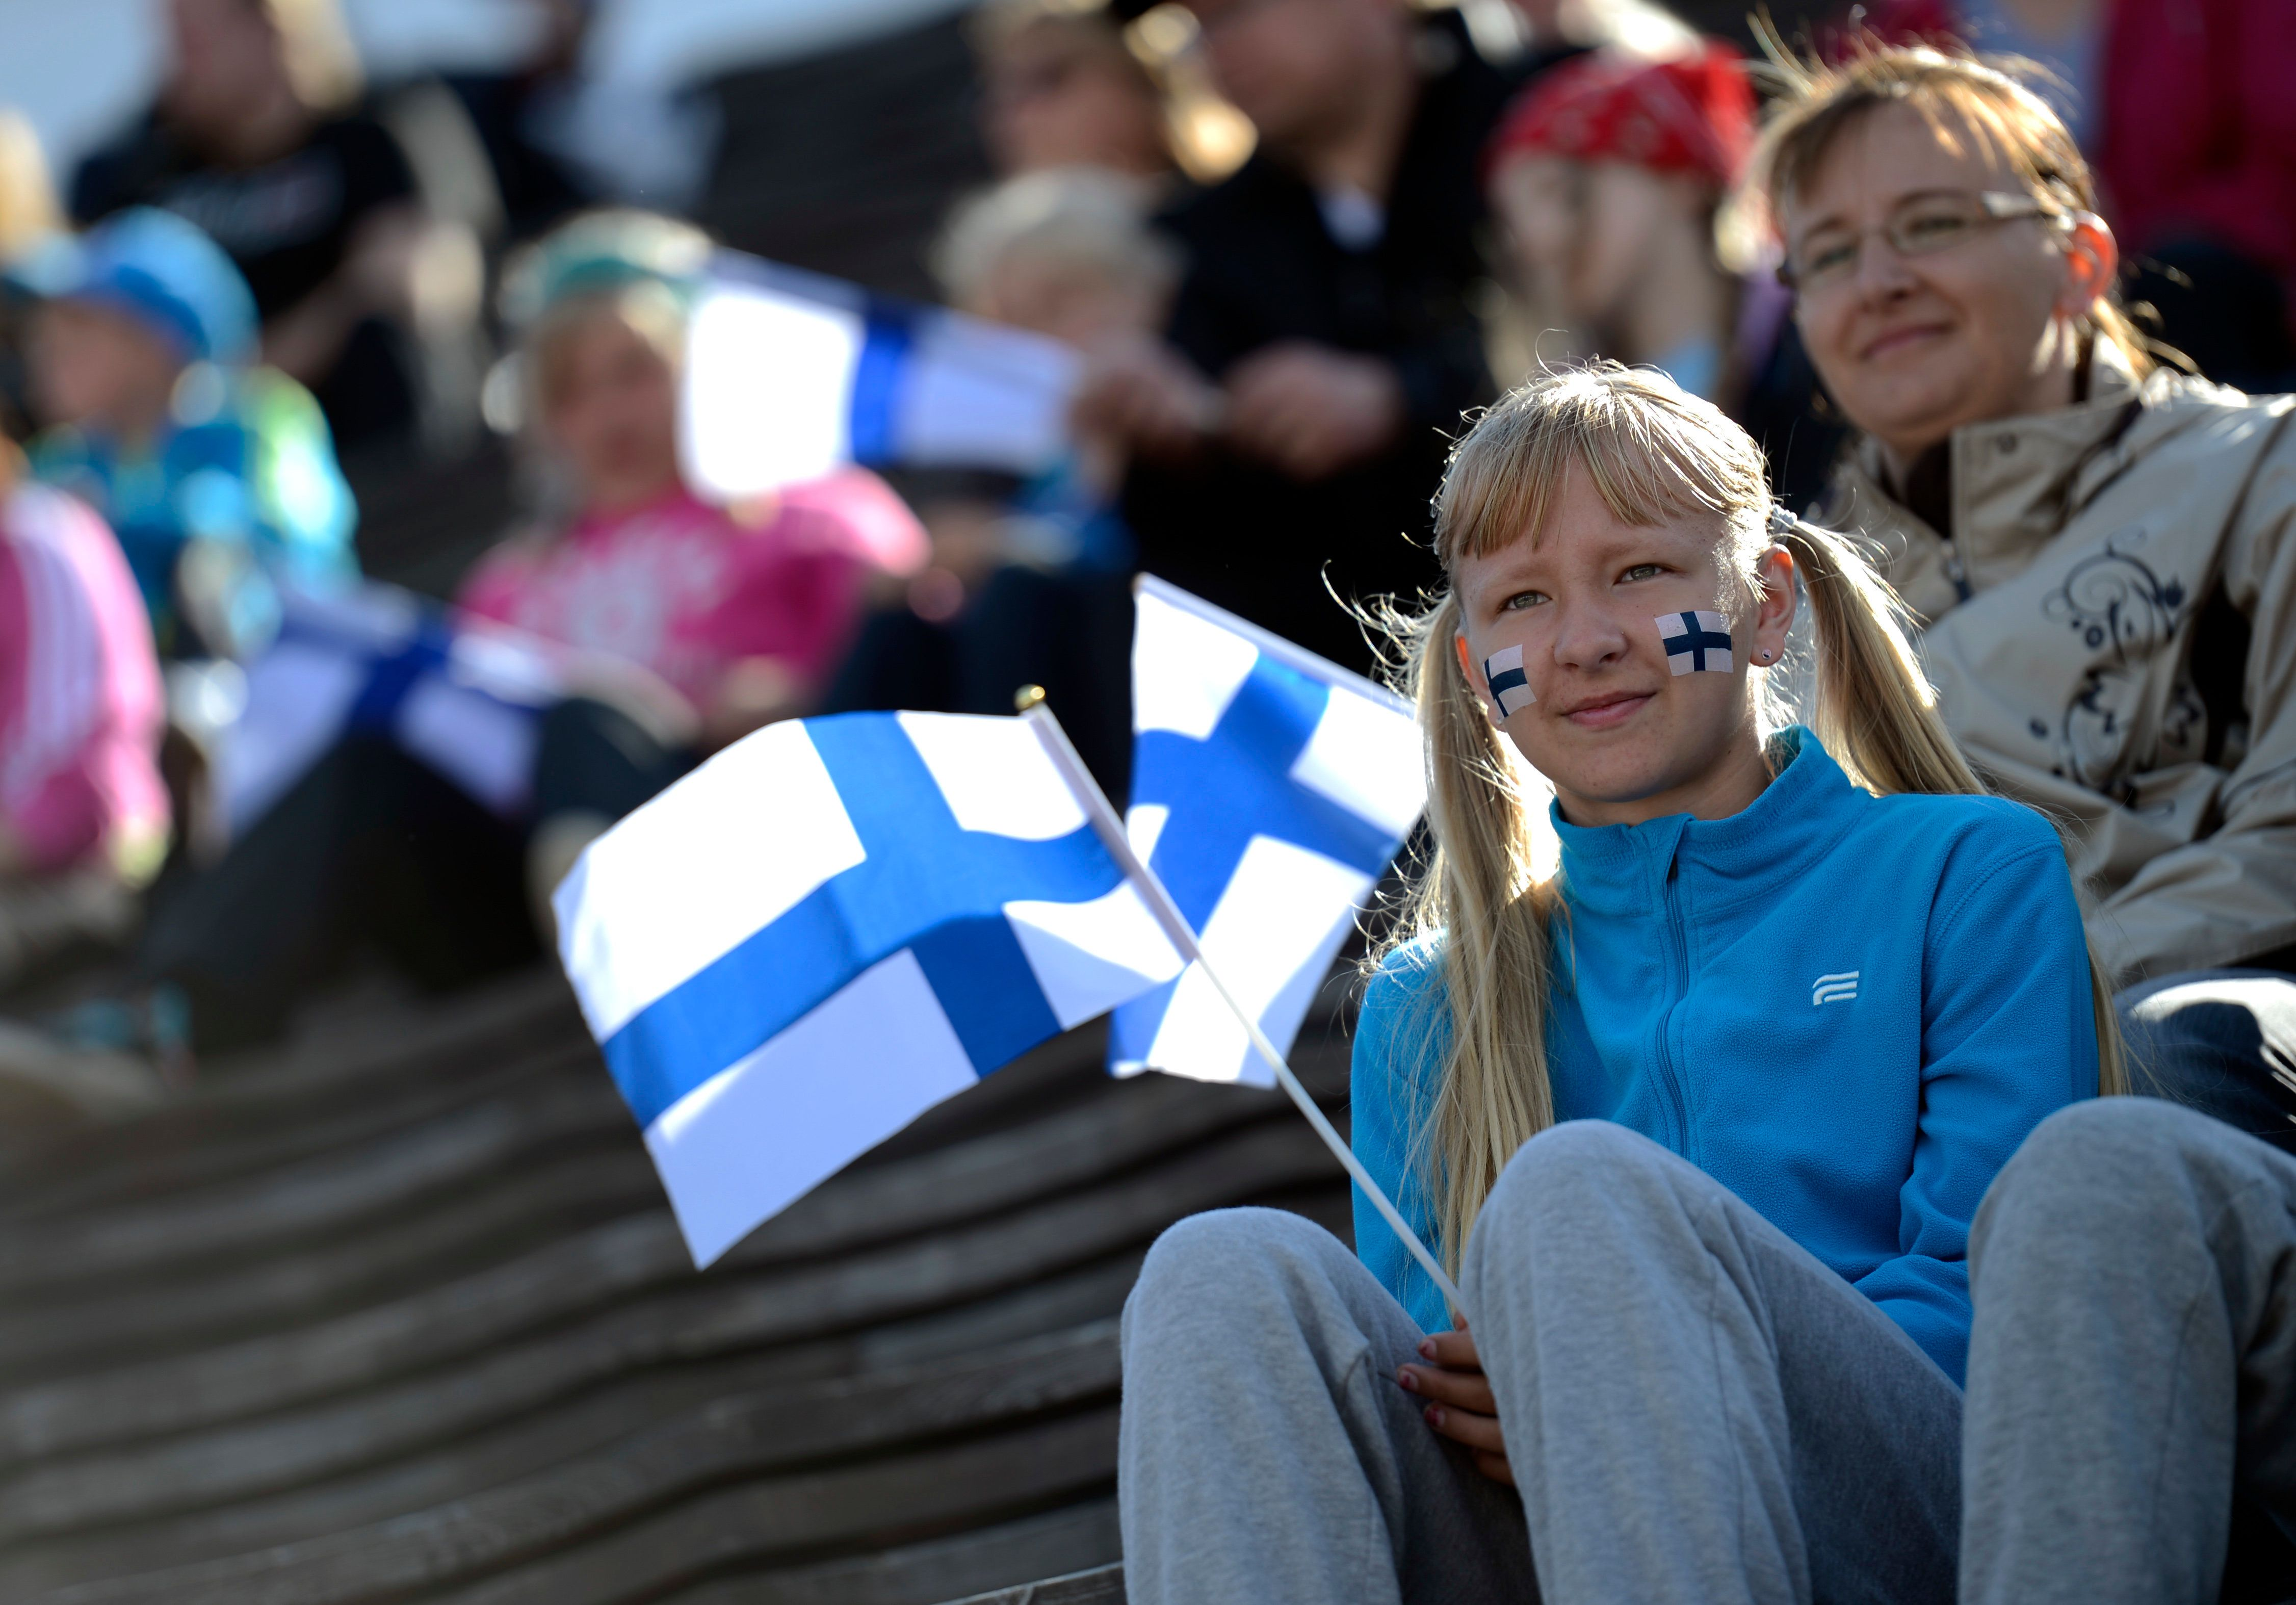 A girls hols a Finnish flag on the first day of the 2012 European Athletics Championships at the Olympic Stadium in Helsinki on June 27, 2012.  AFP PHOTO / JONATHAN NACKSTRAND        (Photo credit should read JONATHAN NACKSTRAND/AFP/GettyImages)